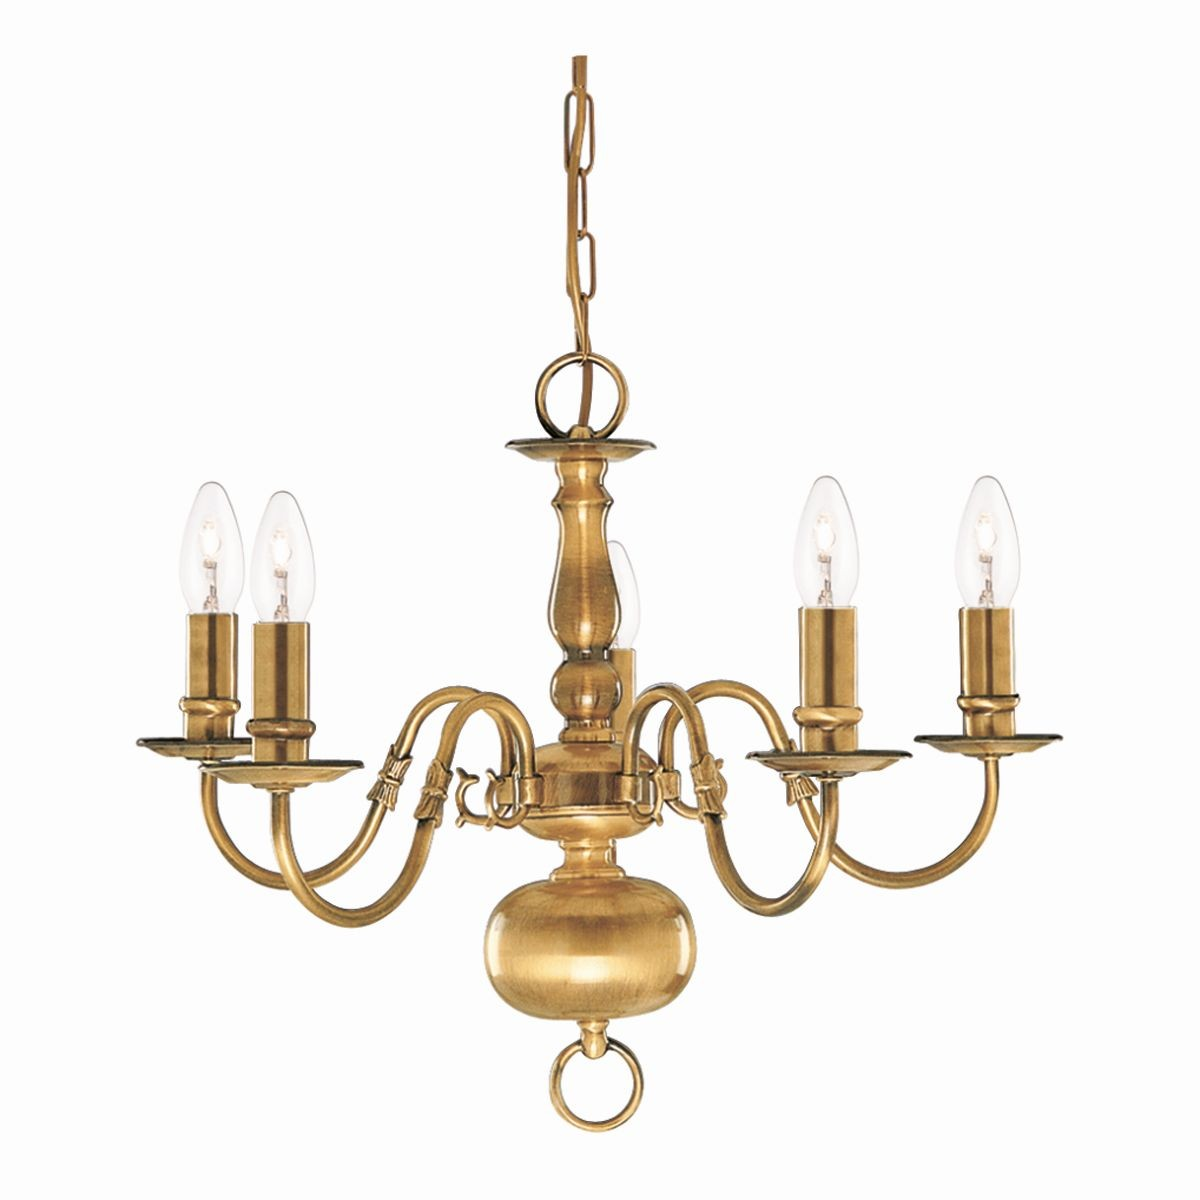 Brass Chandelier Ceiling Lights : Flemish ceiling light arm solid brass